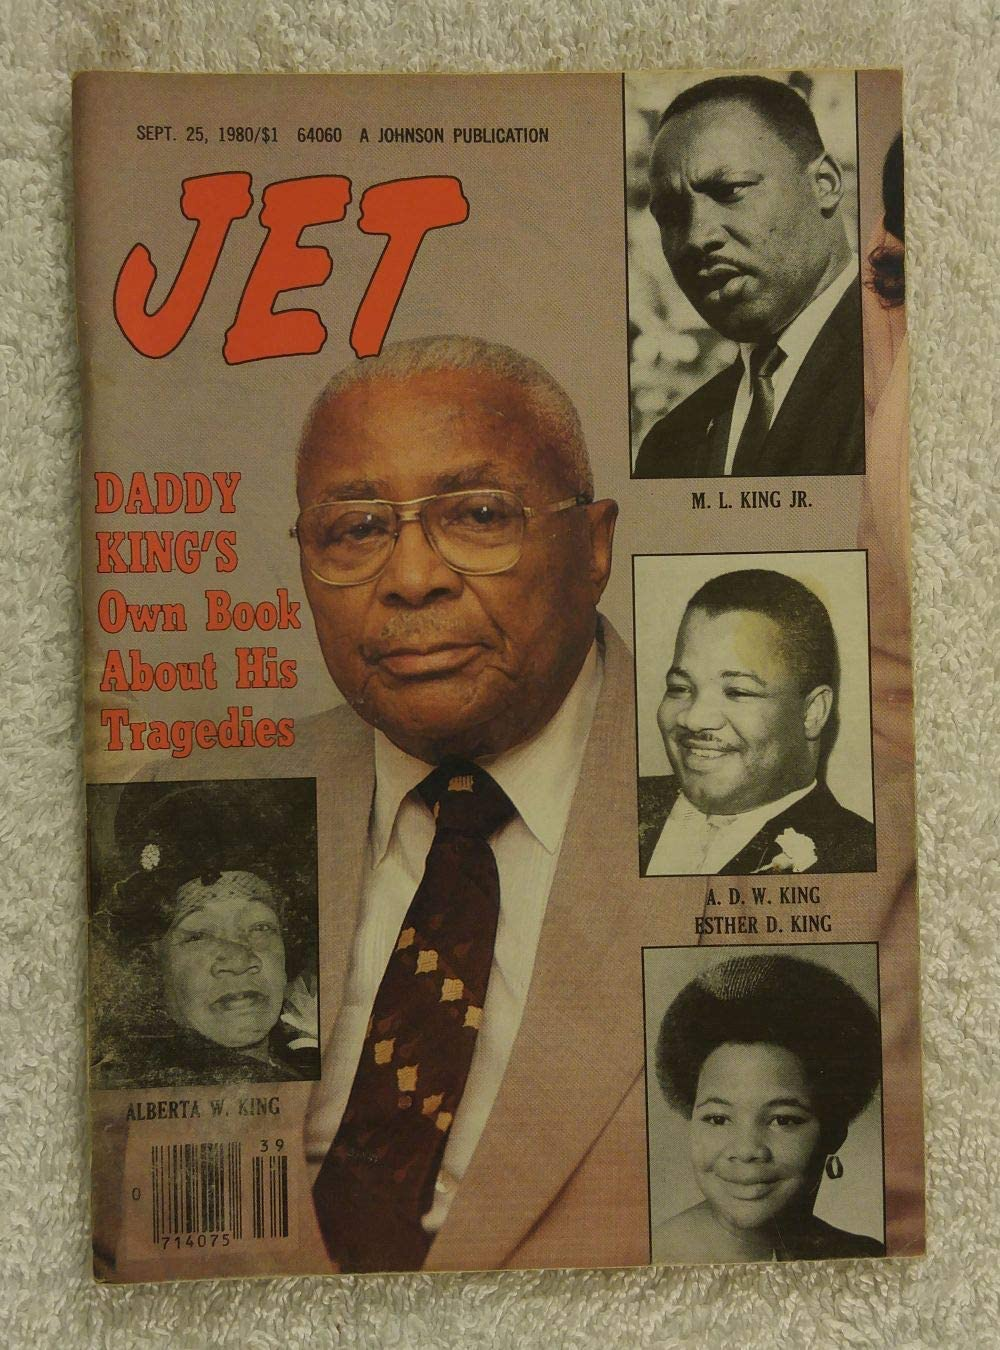 Amazon Com Martin Luther King Senior Daddy King S Own Book About His Tragedies Jet Magazine September 25 1980 Martin Luther King Sr Entertainment Collectibles